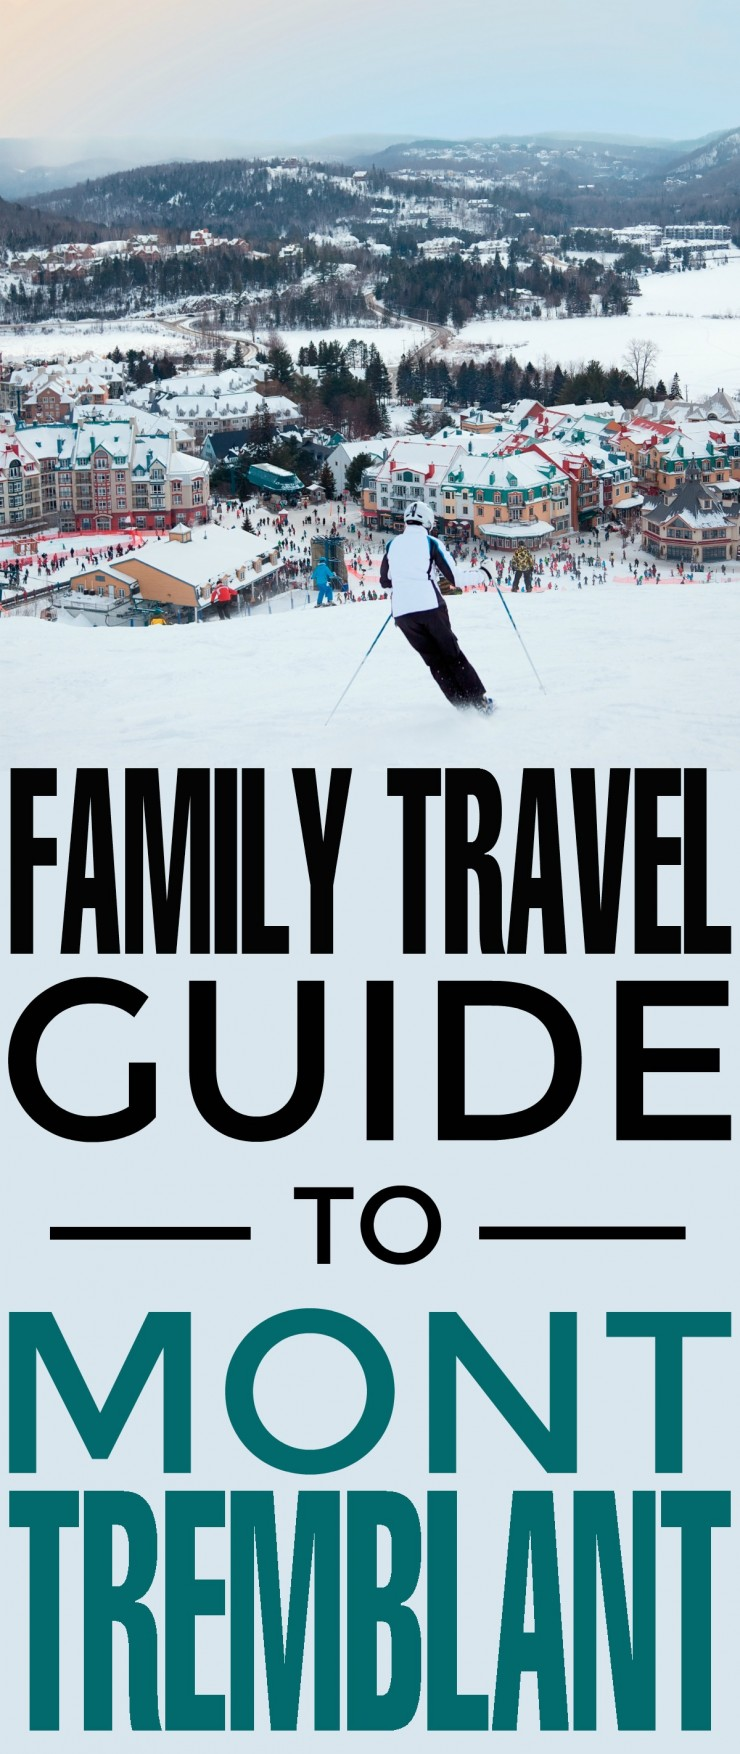 Tremblant is a Ski Resort located on Mont Tremblant in the Laurentian mountains of Québec, here in Canada and it really does have something for everyone. This Family Travel Guide to Mont Tremblant will give you all the best tips for the attractions and restaurants you will want to check out on your own trip!